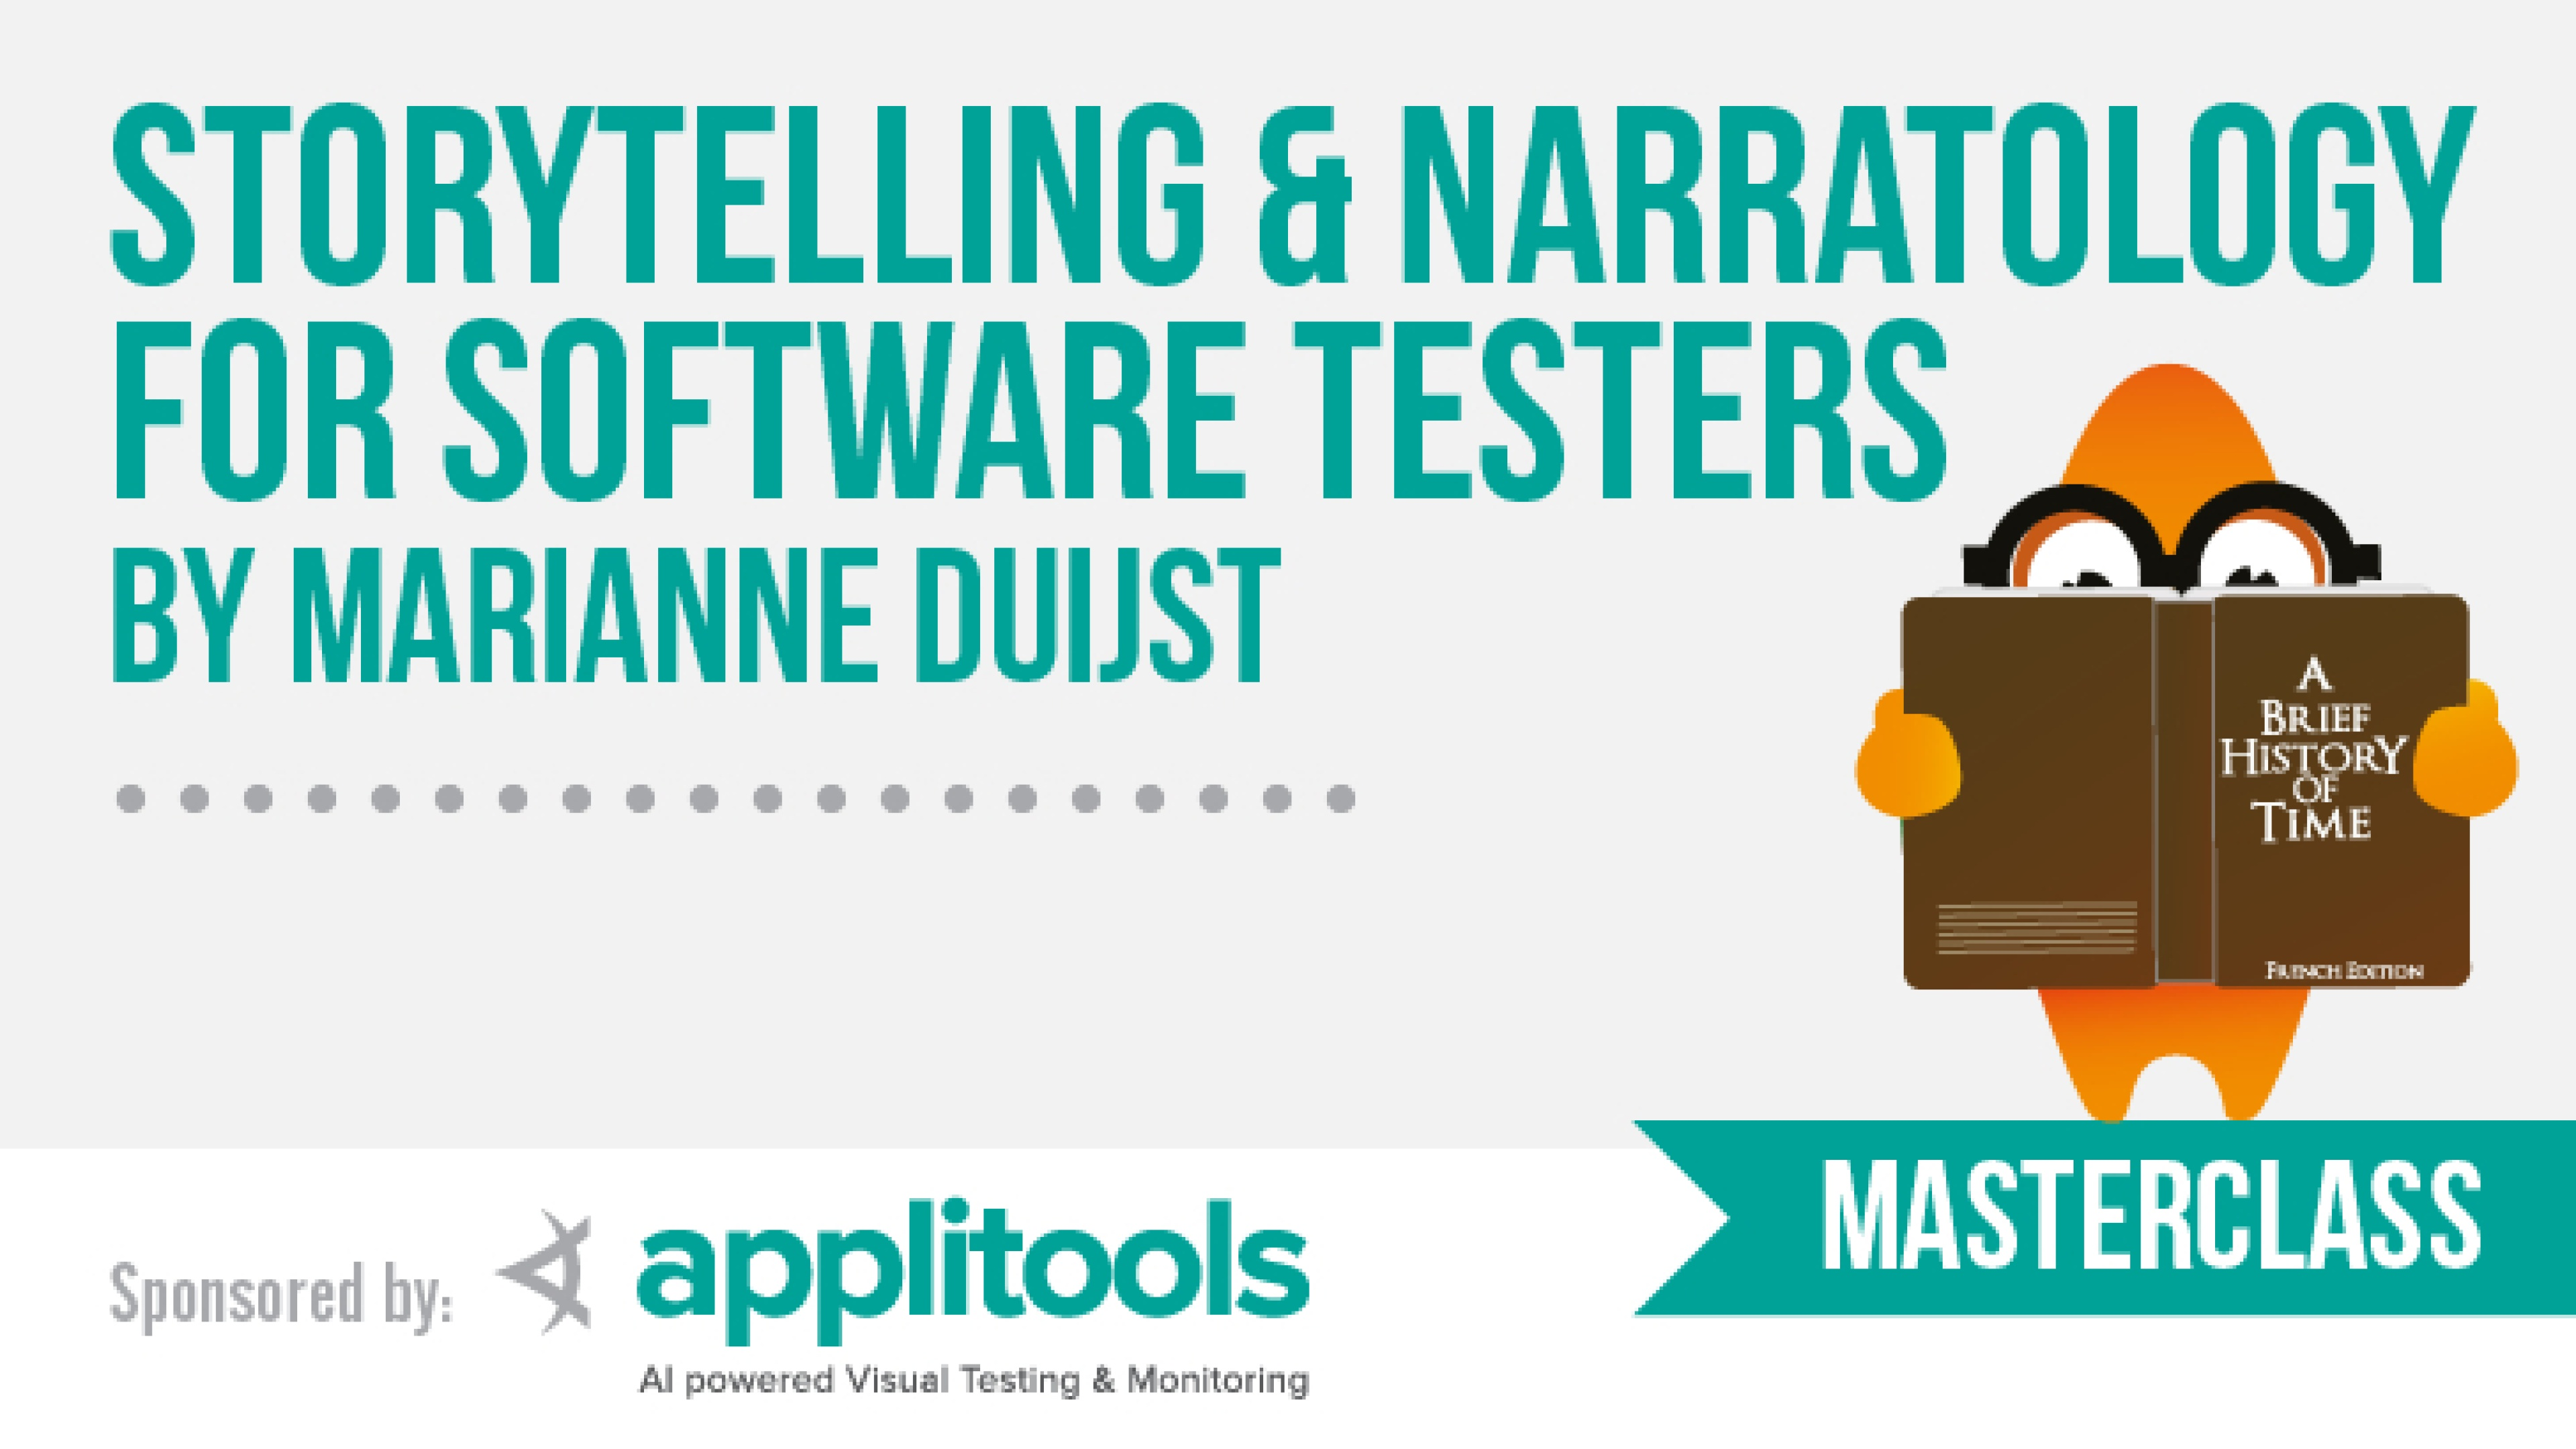 Storytelling & Narratology for Software Testers with Marianne Duijst